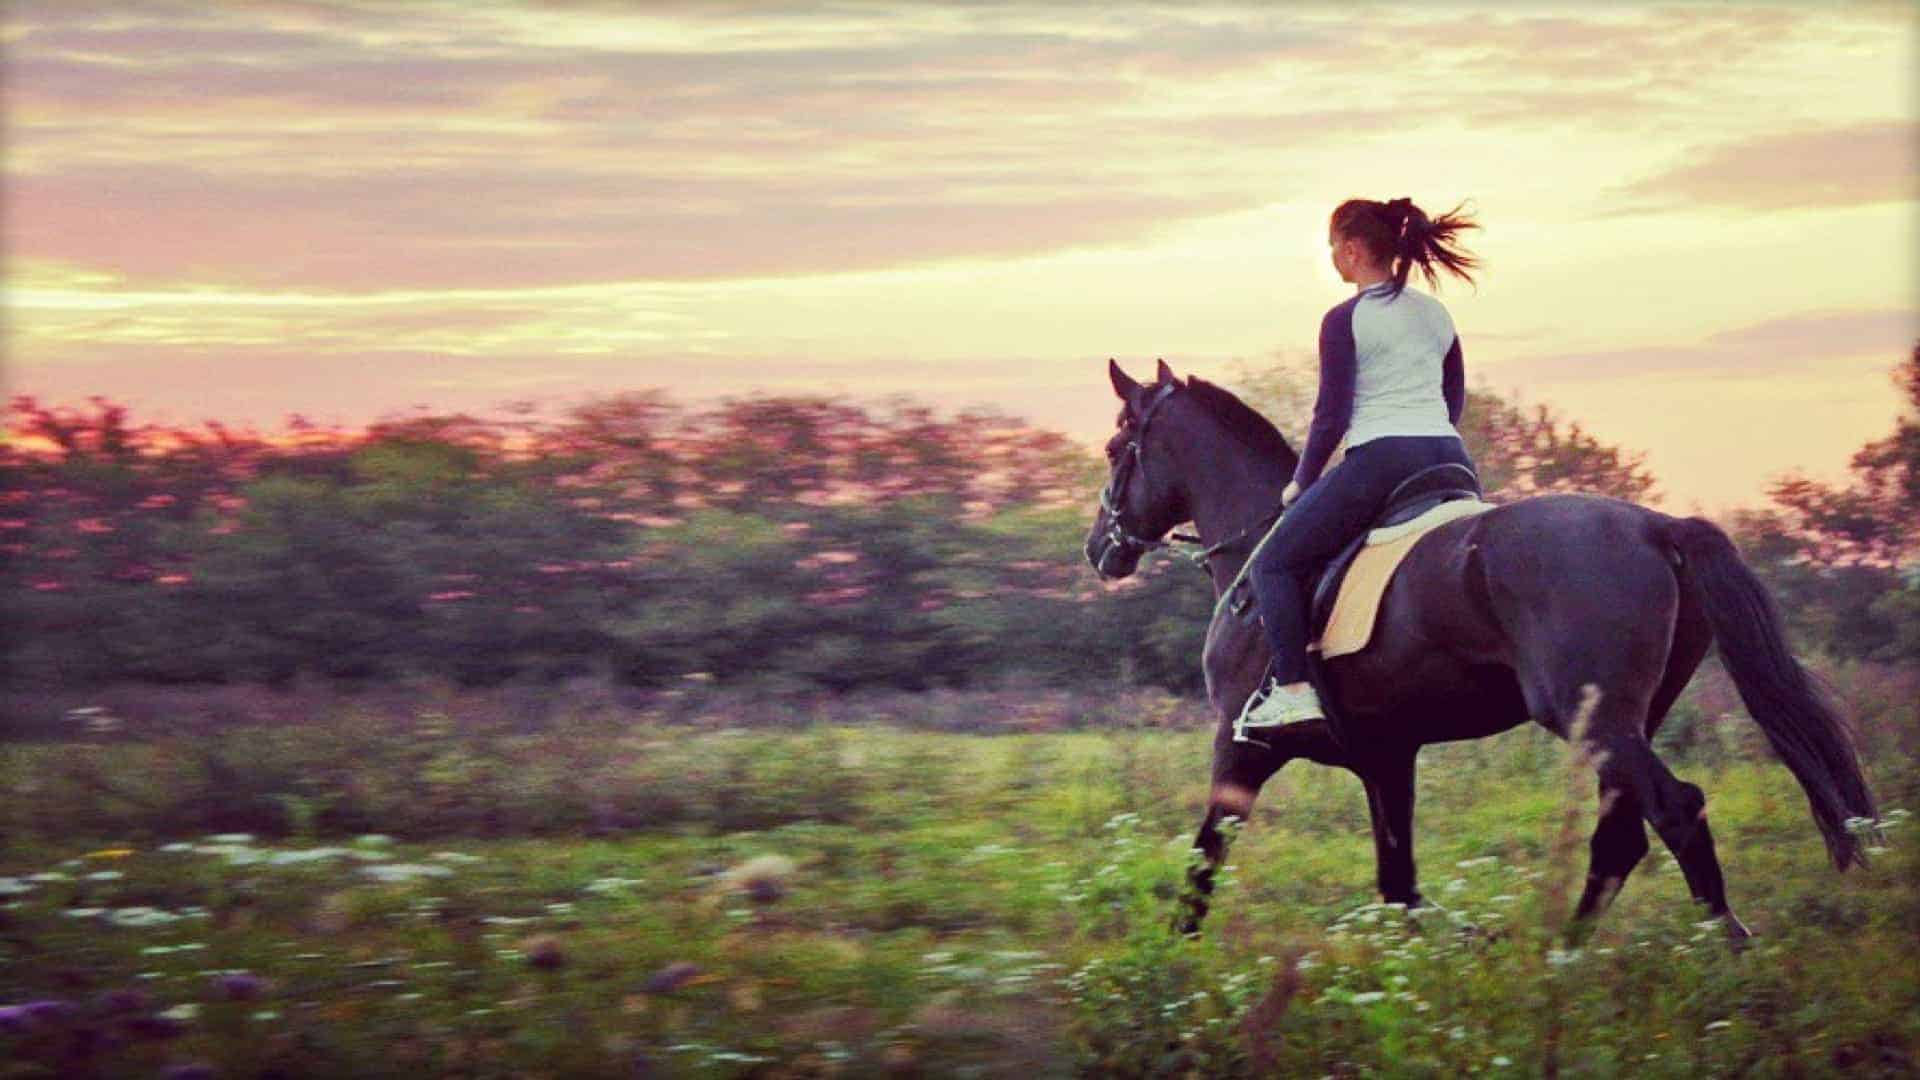 A woman riding a horse through a field at dusk; the horse is saddled, bridled, and bitted, with the reigns held by the woman.